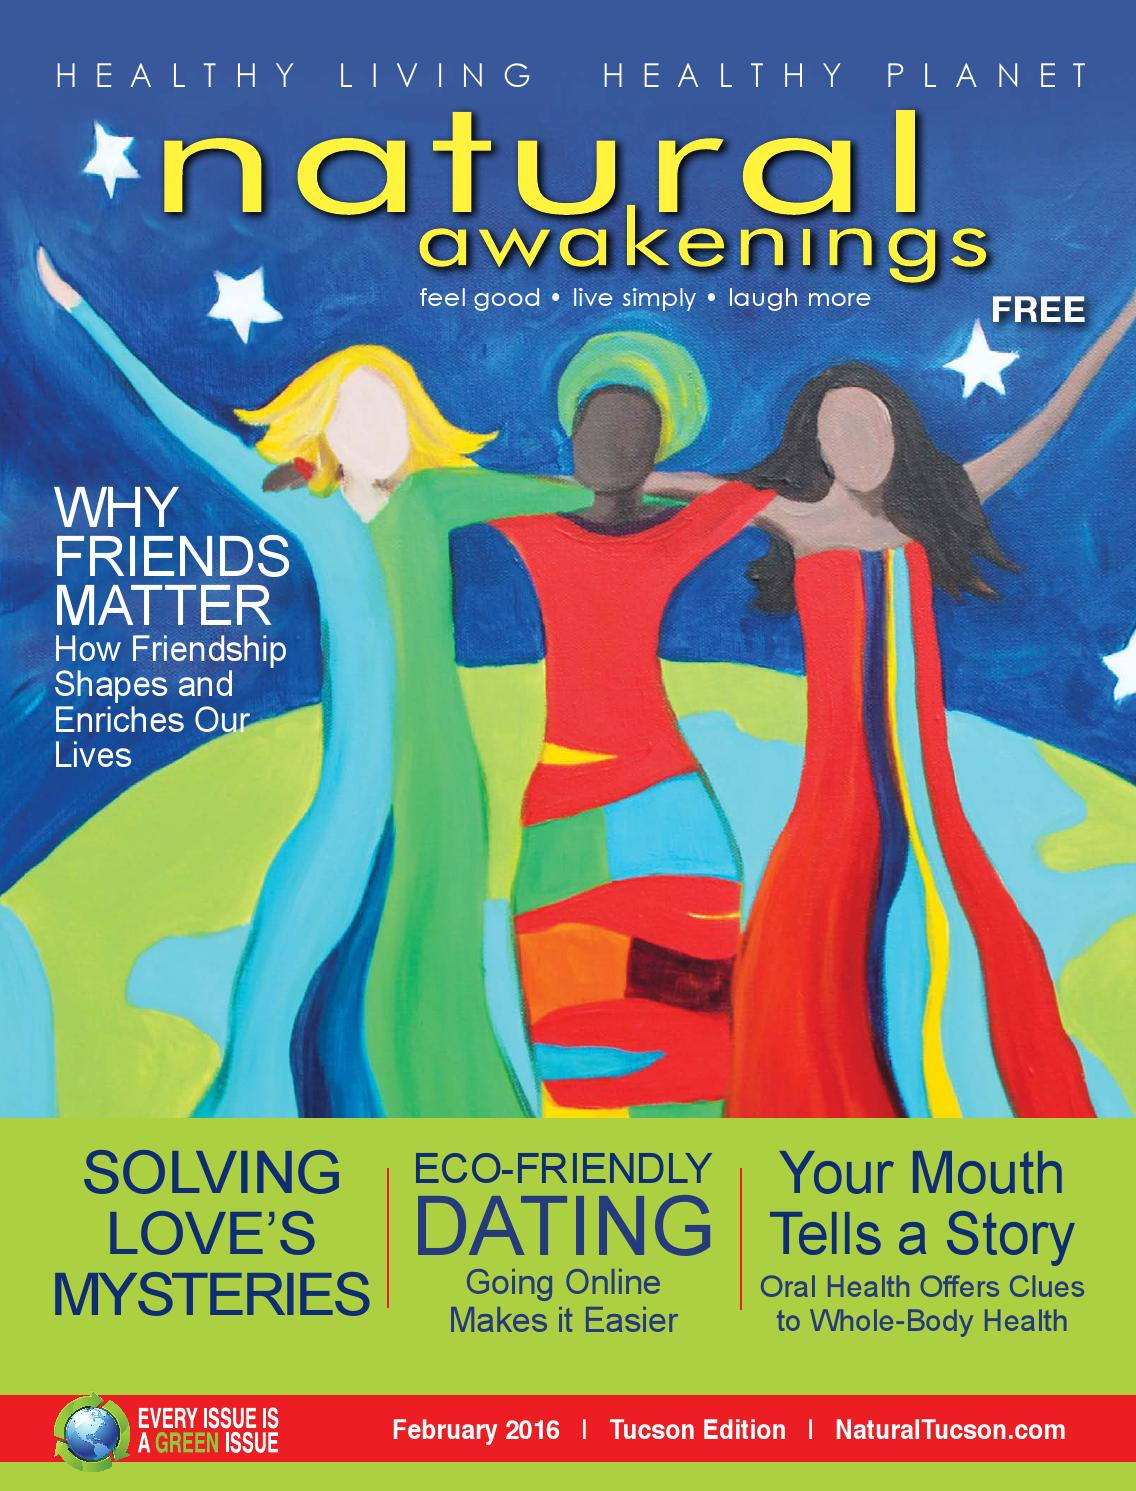 February 2016 natural awakenings tucson by natural awakenings tucson february 2016 natural awakenings tucson by natural awakenings tucson issuu fandeluxe Gallery